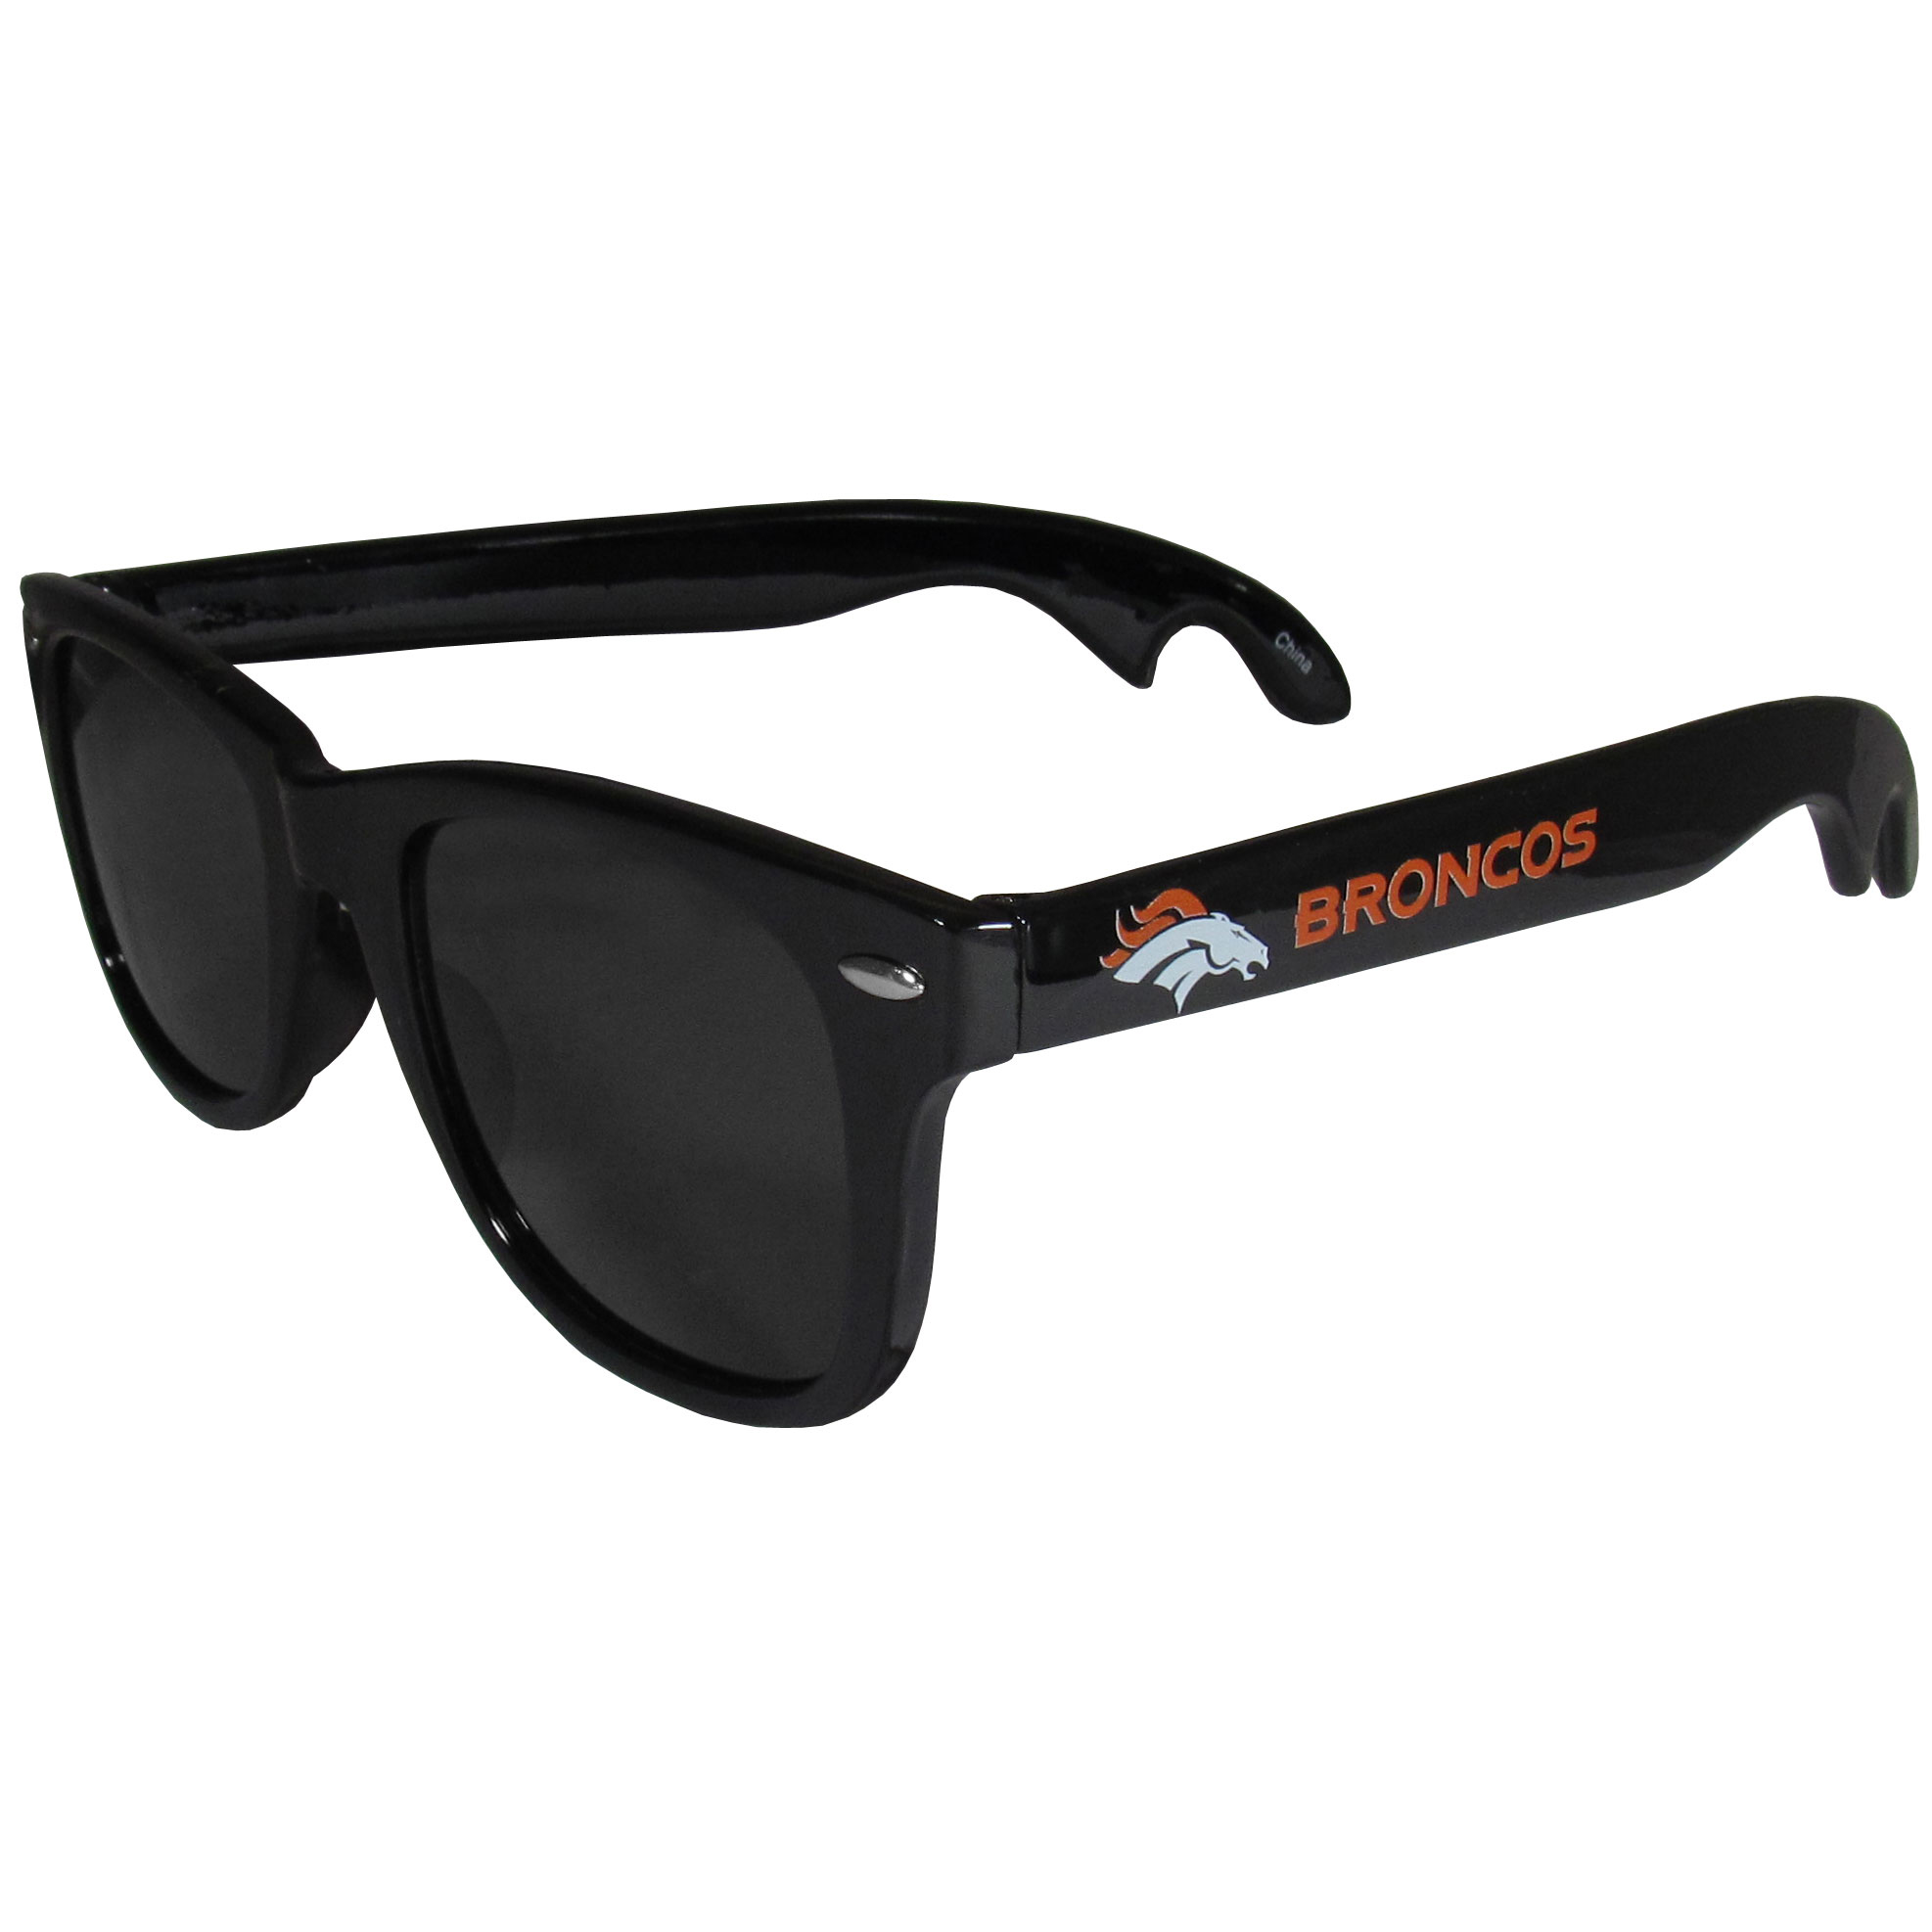 Denver Broncos Beachfarer Bottle Opener Sunglasses - Seriously, these sunglasses open bottles! Keep the party going with these amazing Denver Broncos bottle opener sunglasses. The stylish retro frames feature team designs on the arms and functional bottle openers on the end of the arms. Whether you are at the beach or having a backyard BBQ on game day, these shades will keep your eyes protected with 100% UVA/UVB protection and keep you hydrated with the handy bottle opener arms.